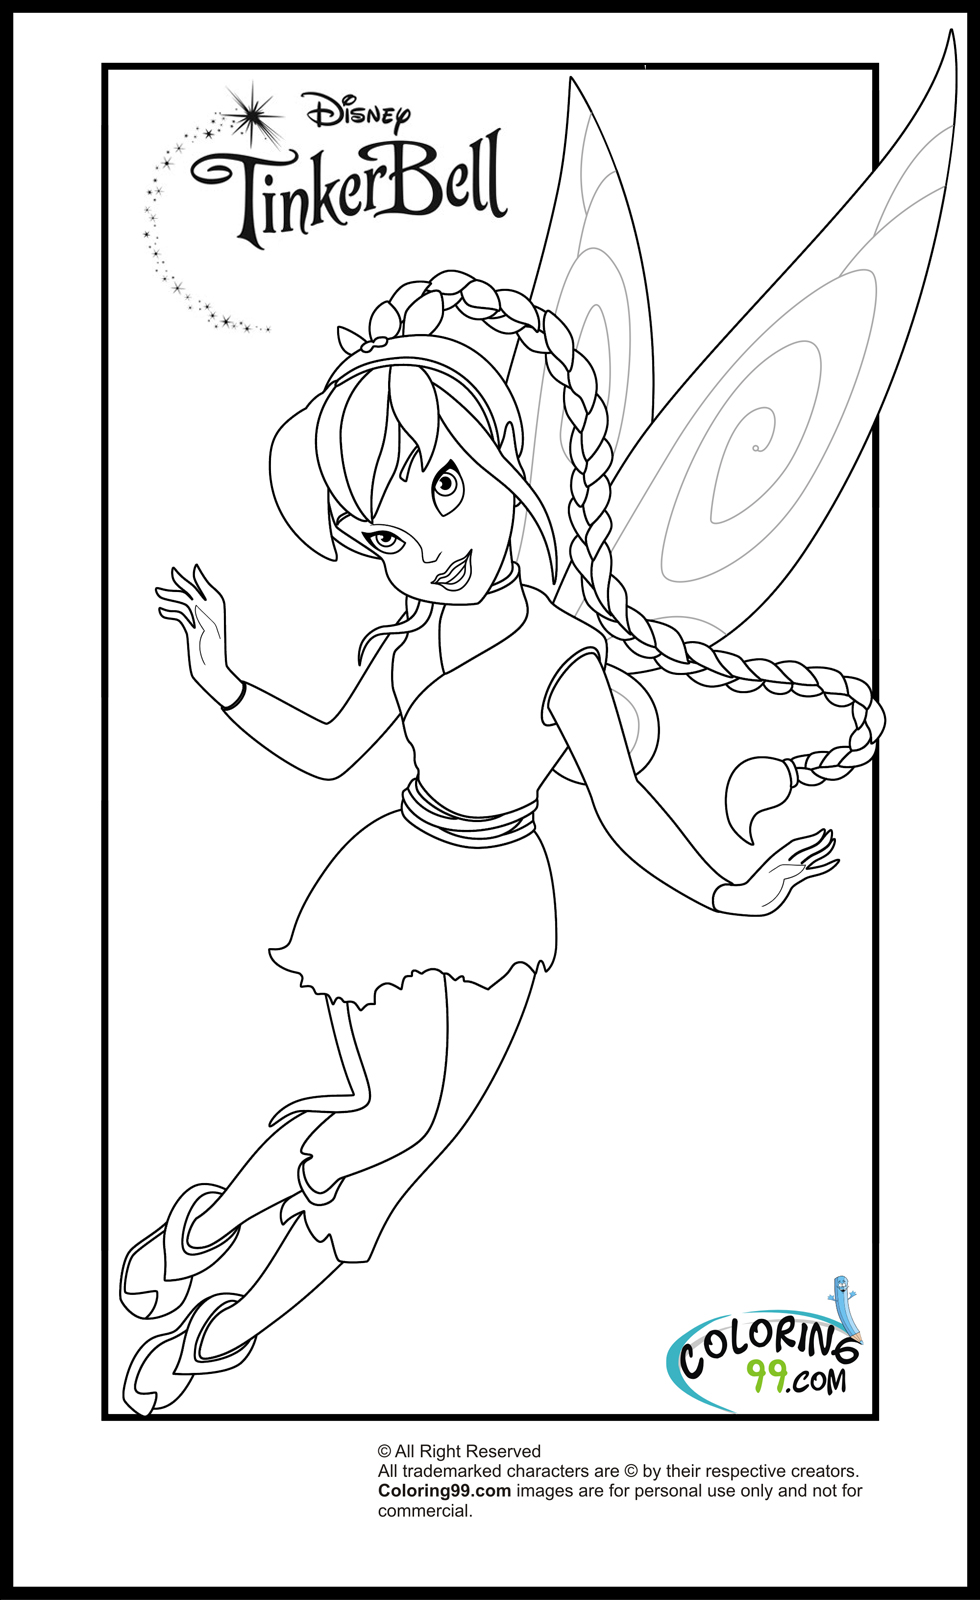 tinkerbell coloring book tinker bell coloring pages to download and print for free coloring tinkerbell book